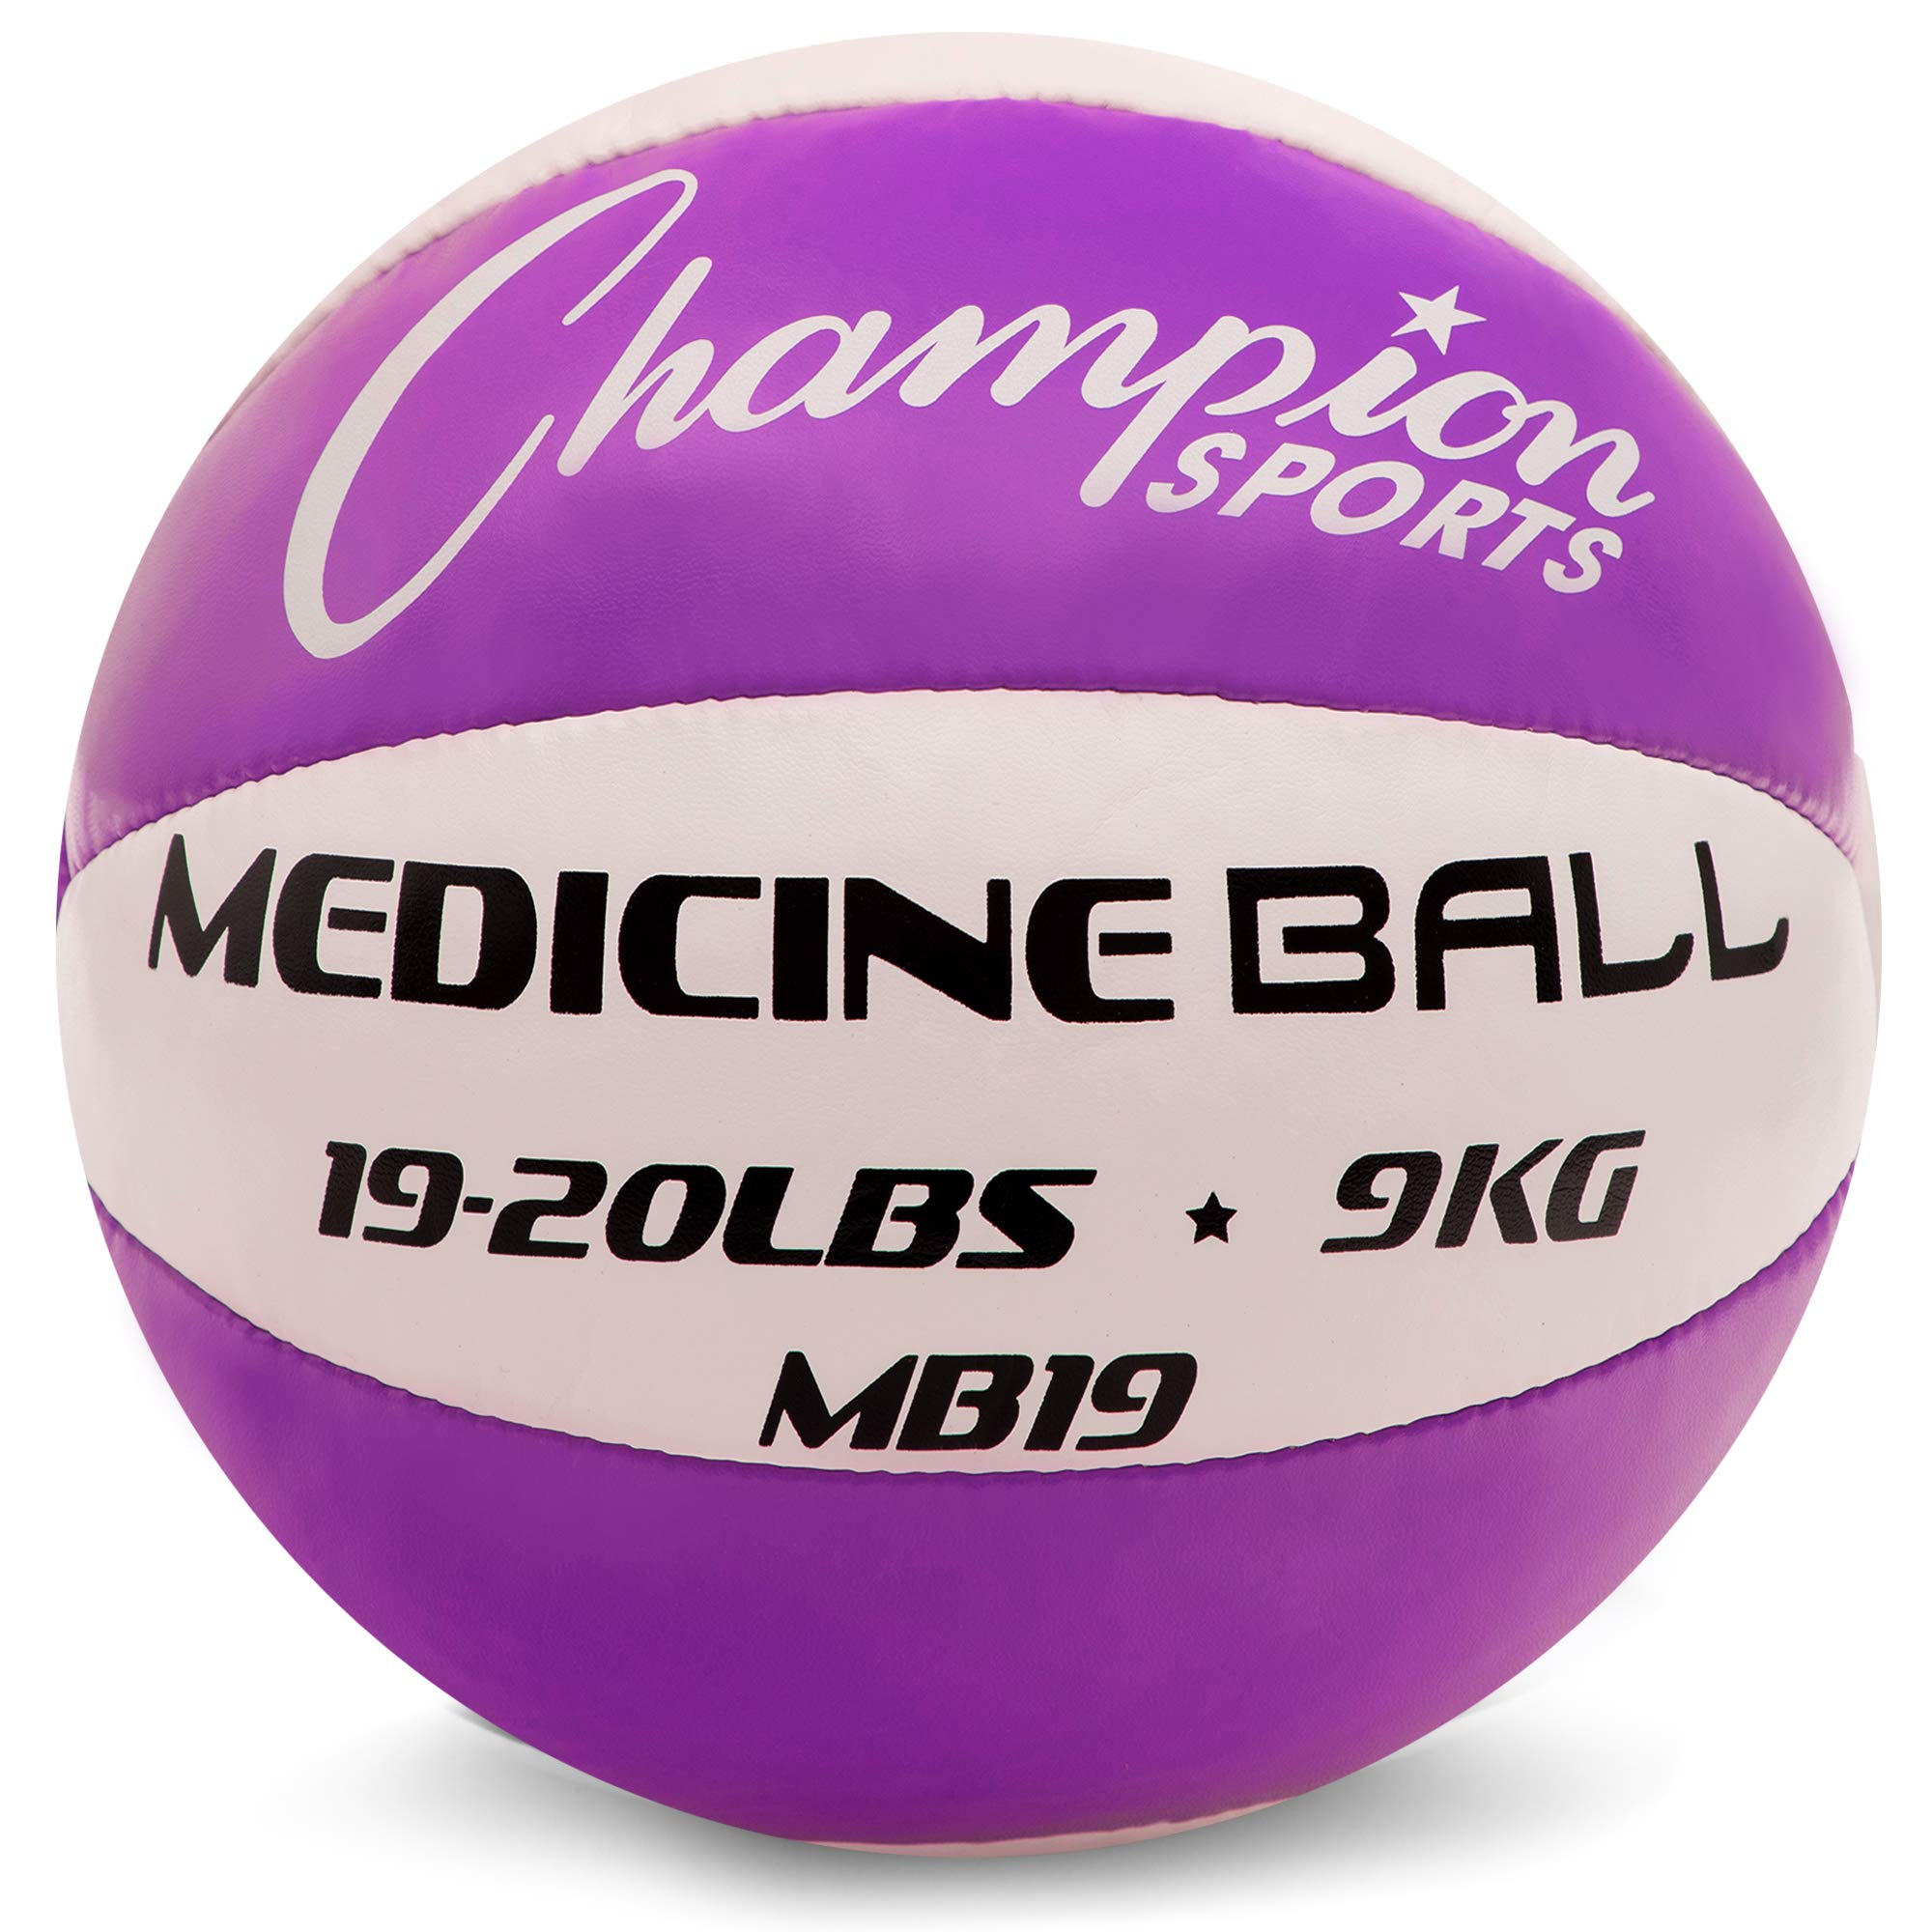 Champion Sports Exercise Medicine Balls, 19-20 lbs, Leather with No-Slip Grip - Weighted Med Ball Set for Weight Training, Stability, Plyometrics, Cross Training, Core Strength - Heavy Workout Ball